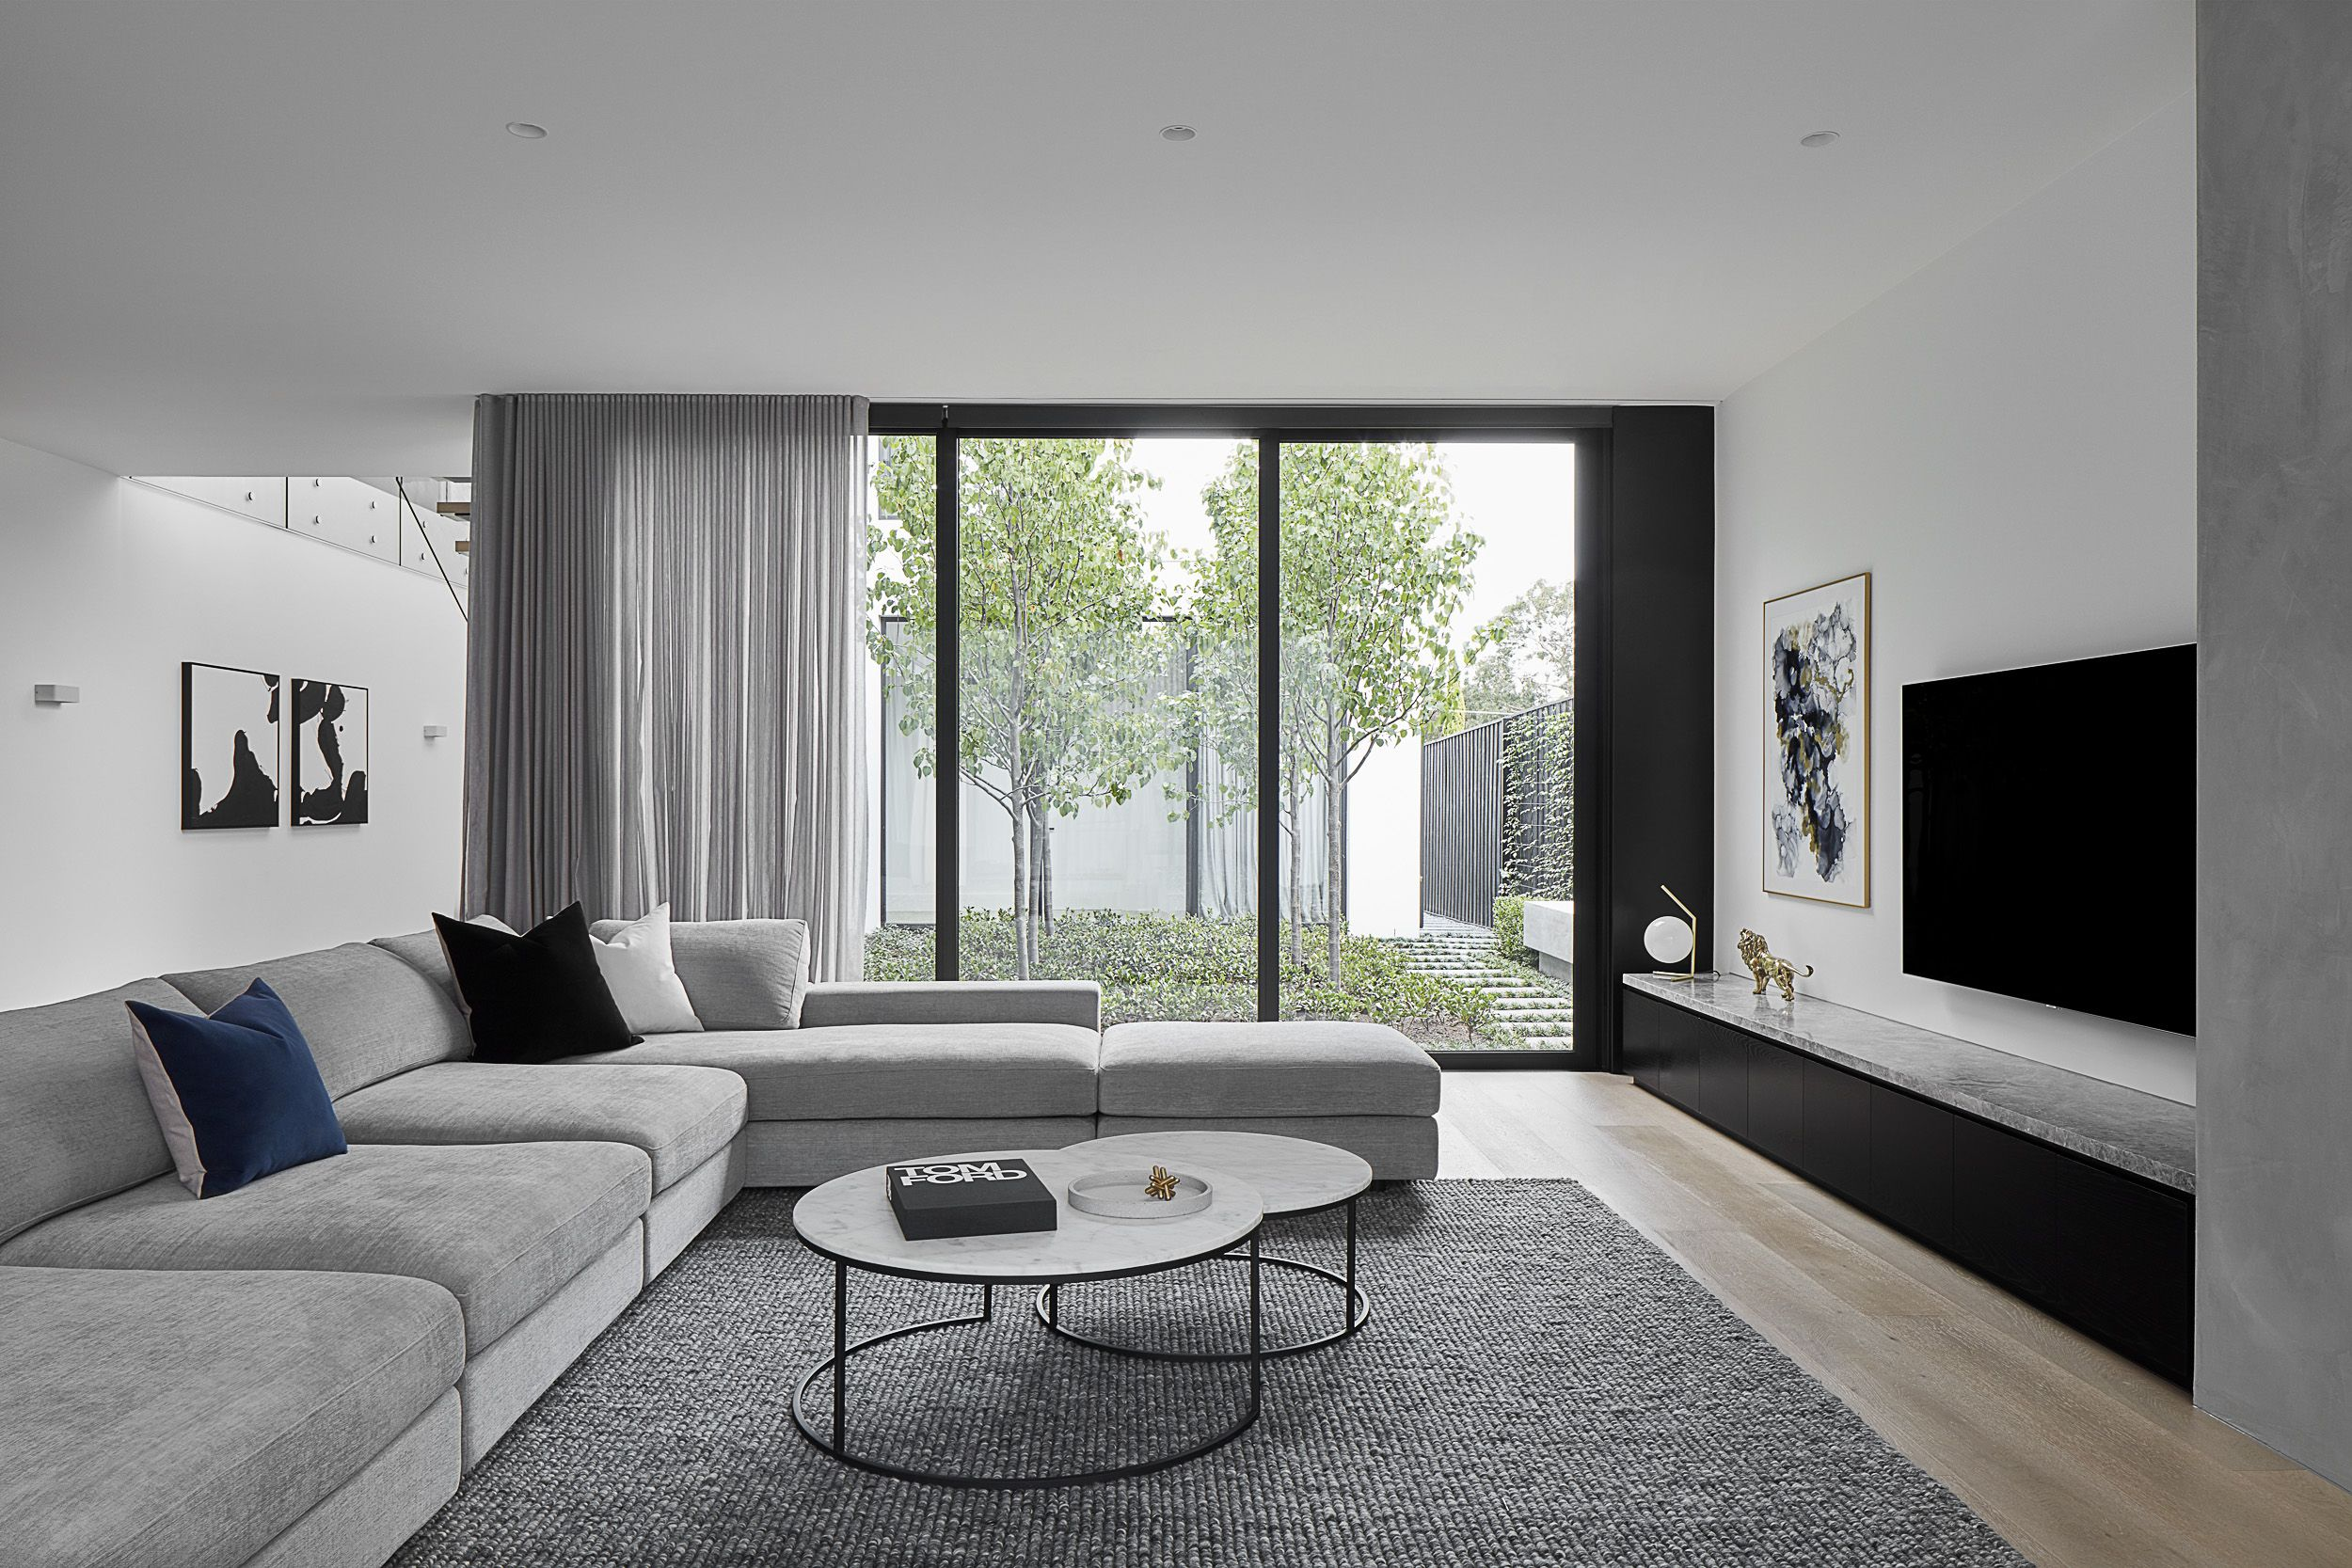 Award Winning Jasper Sofa From King Living And Seymour Chair Featured In Contemporary Design Interio Classy Living Room Living Room Renovation Room Renovation